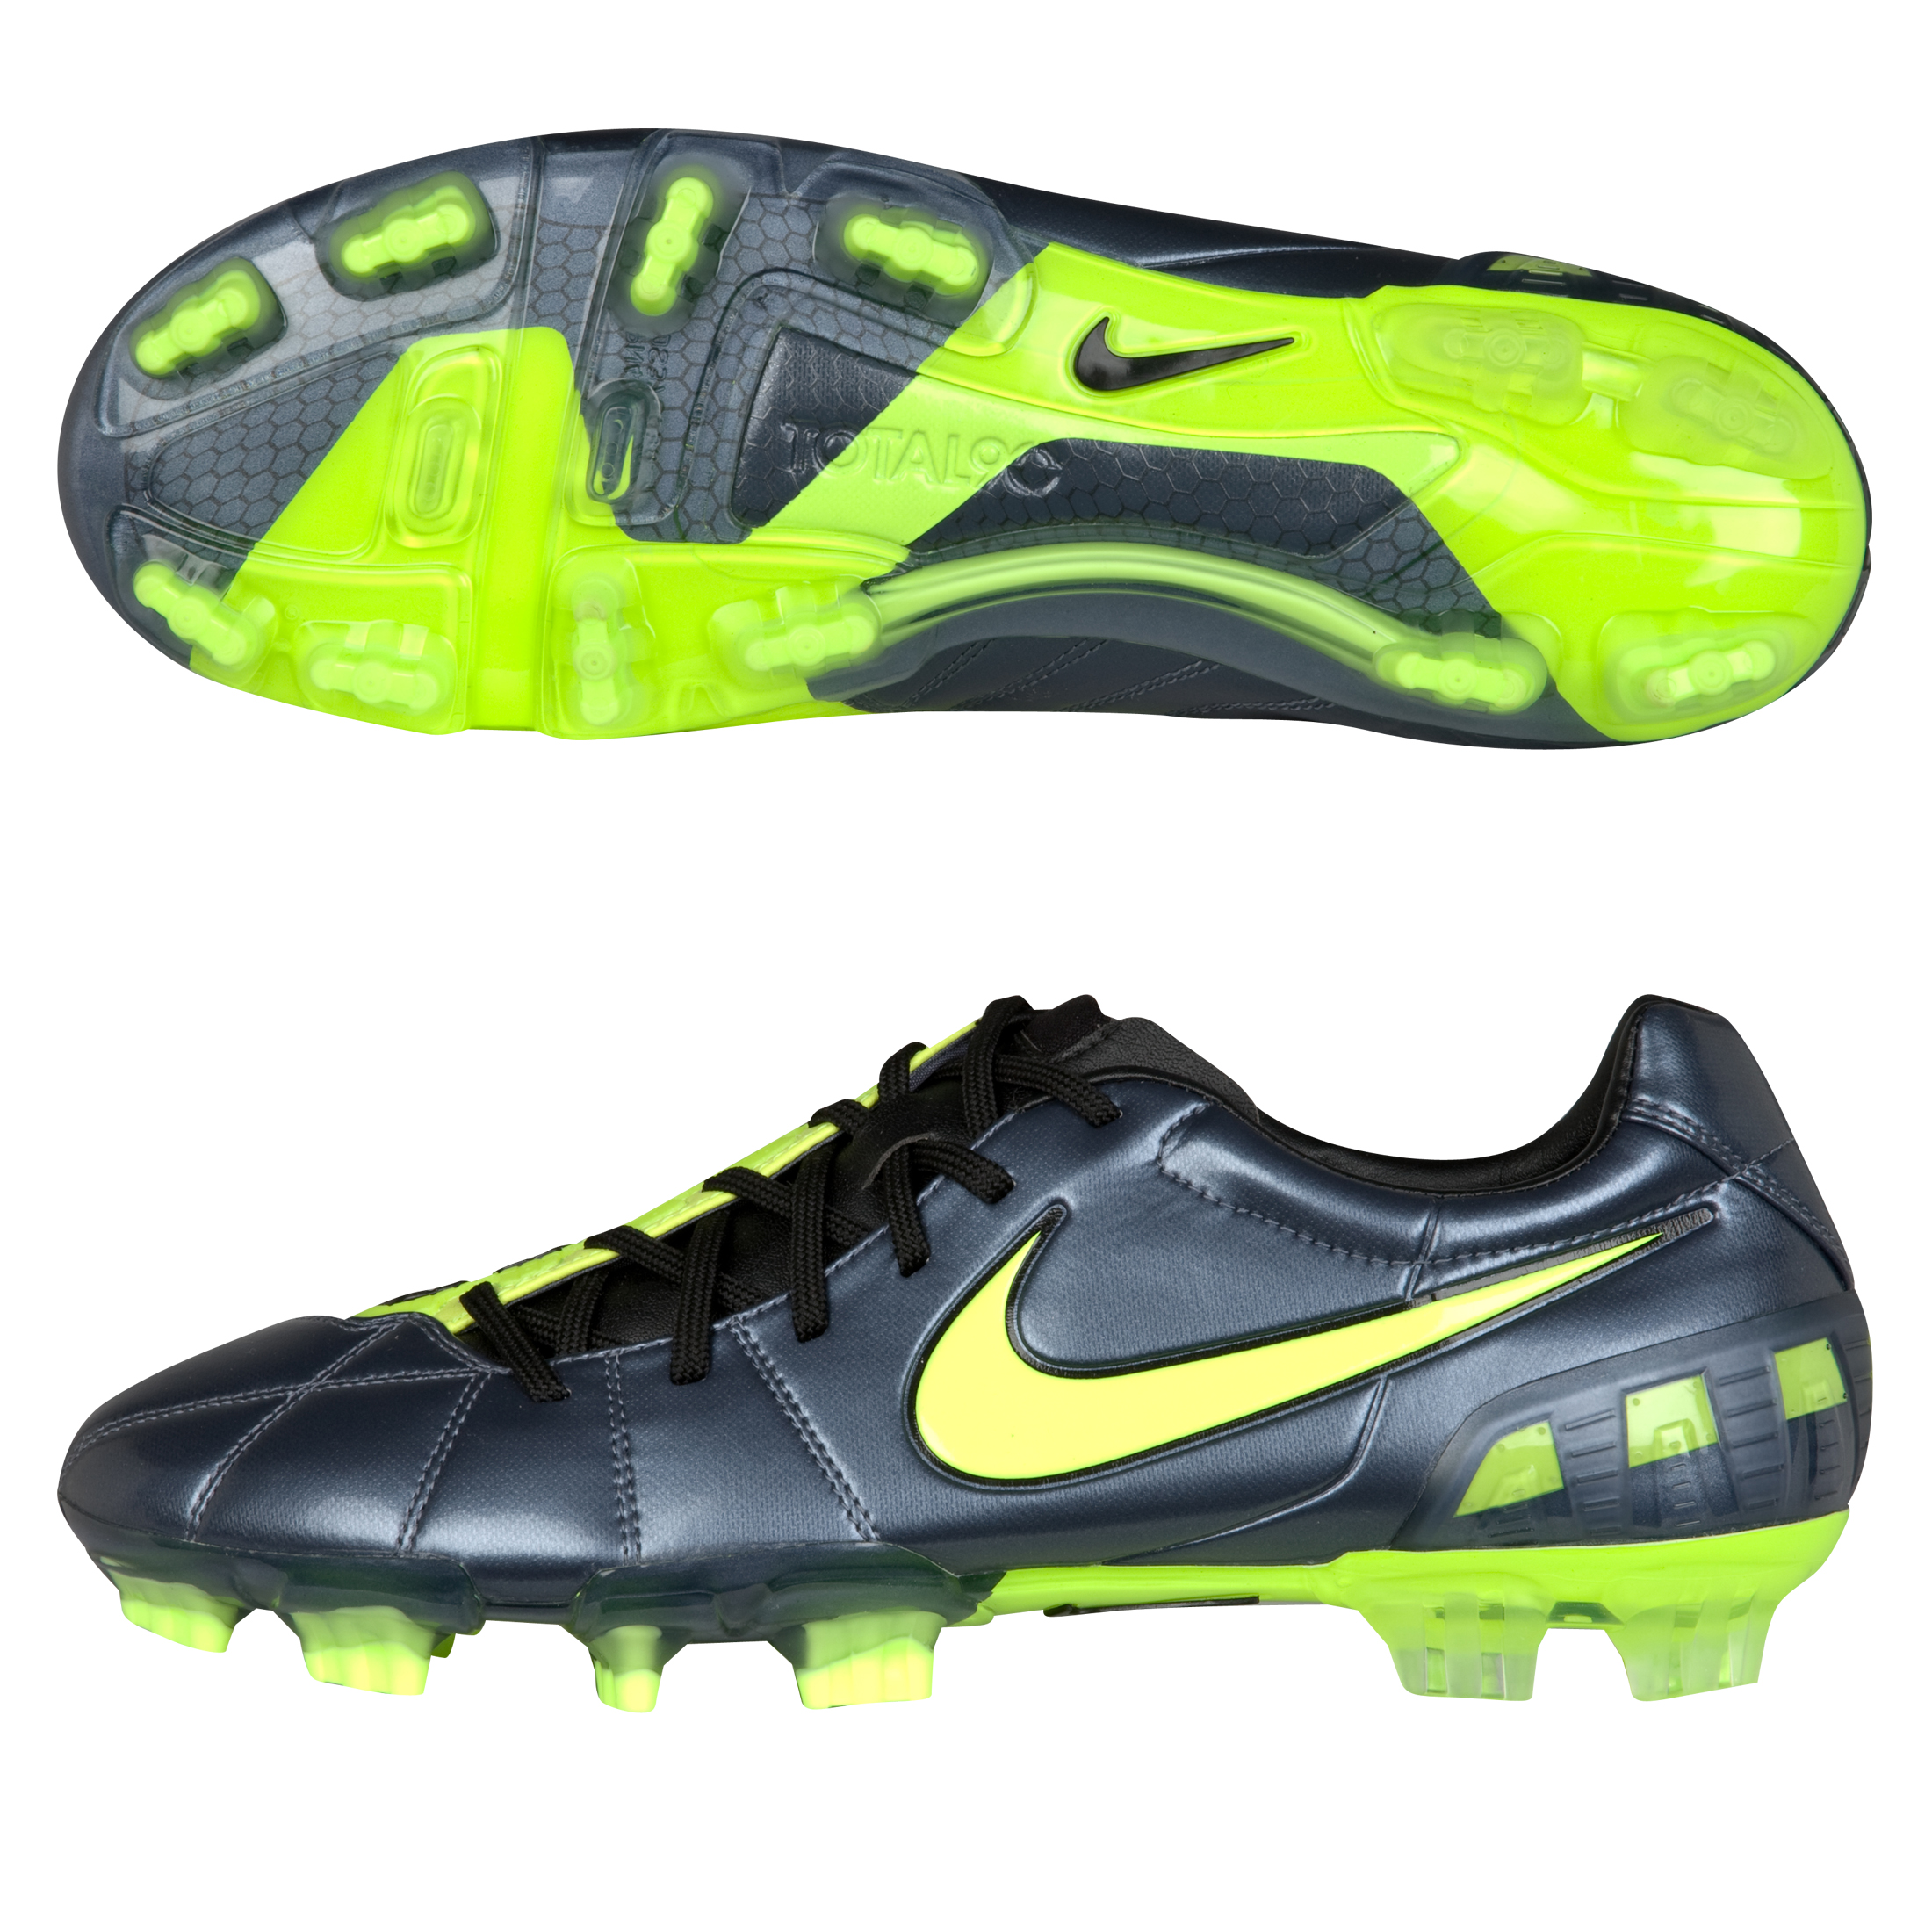 Nike T90 Laser III Firm Ground Metallic Blue Dusk/Volt/Black